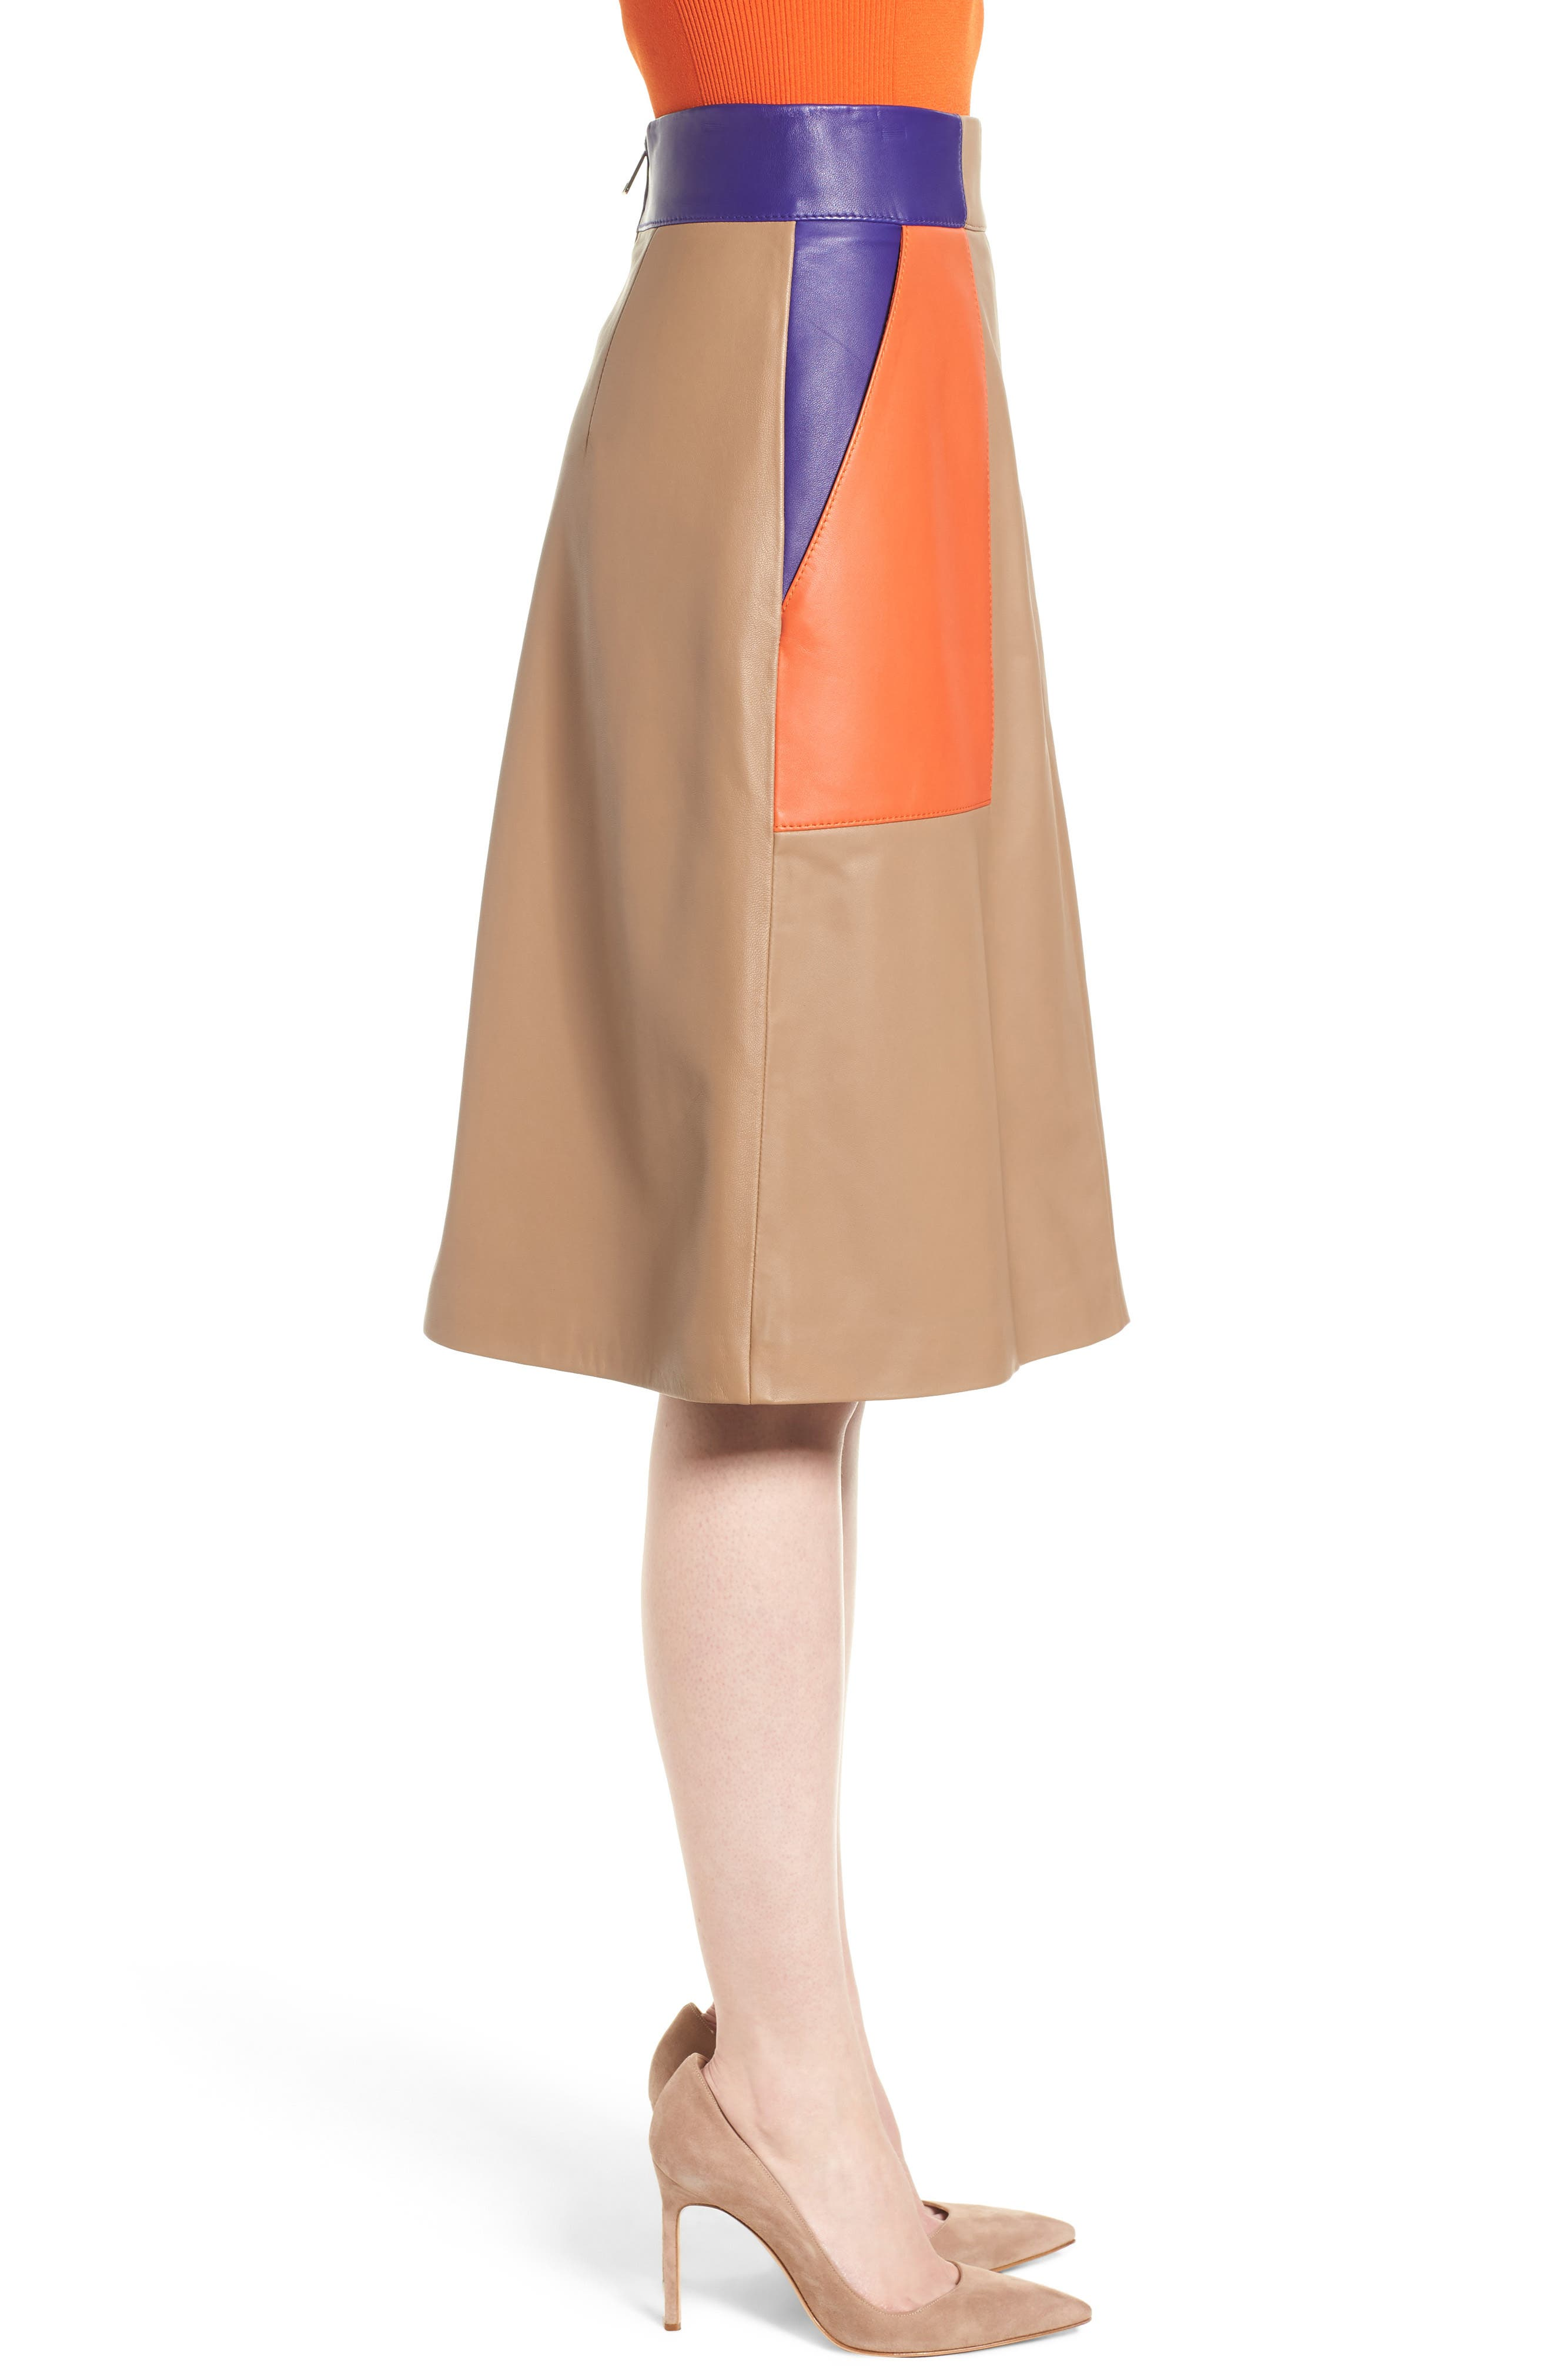 Seplea Colorblock Leather Skirt,                             Alternate thumbnail 3, color,                             Warm Clay Fantasy